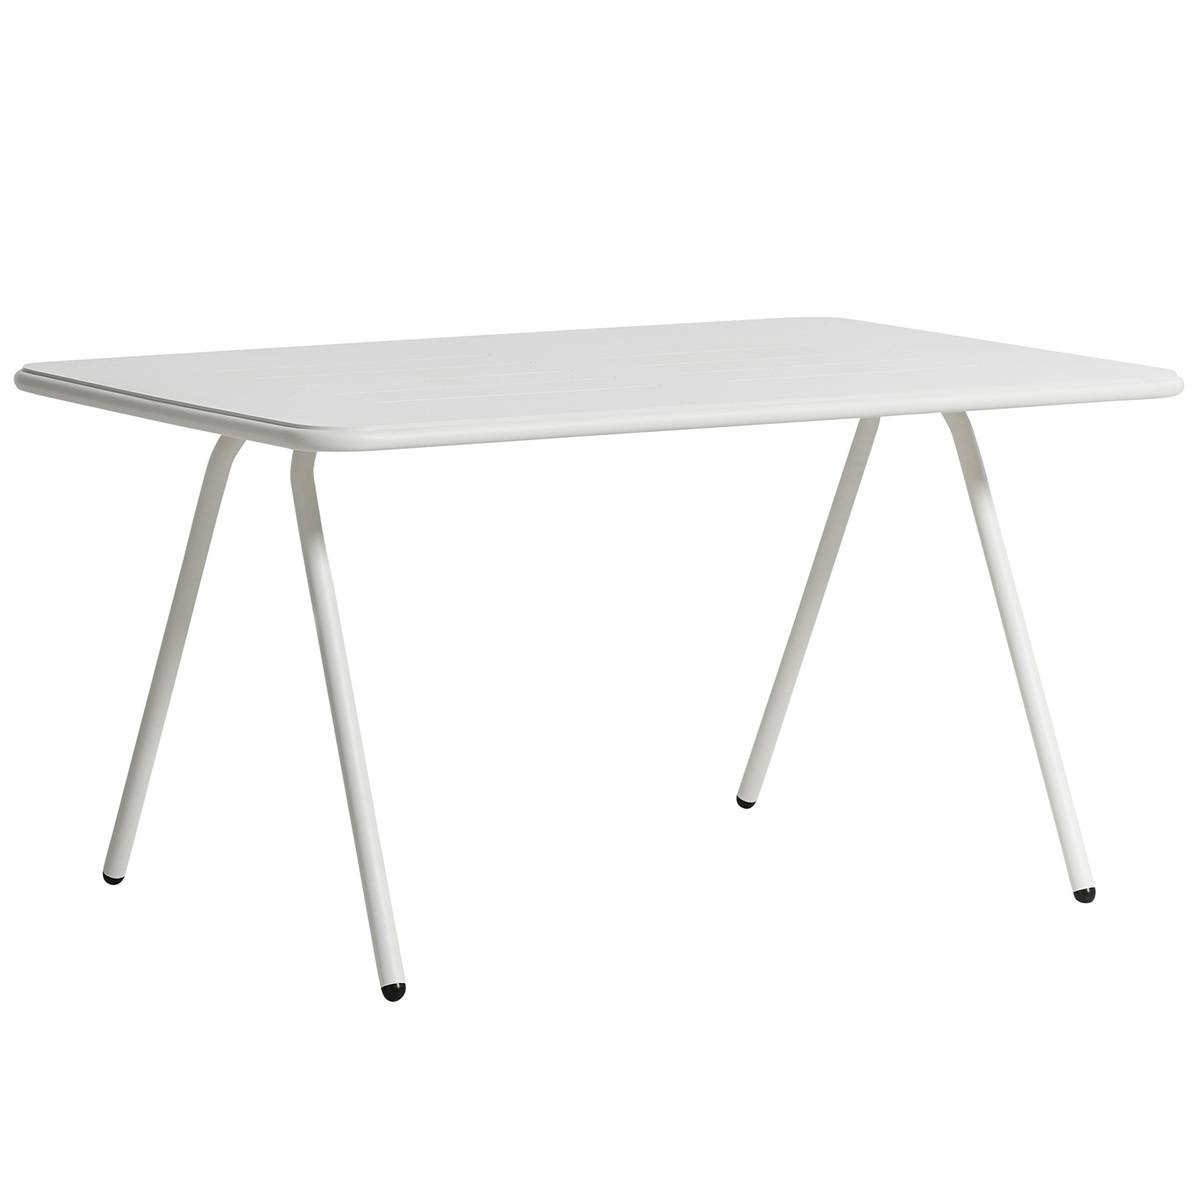 Woud Ray dining table 140 cm, white